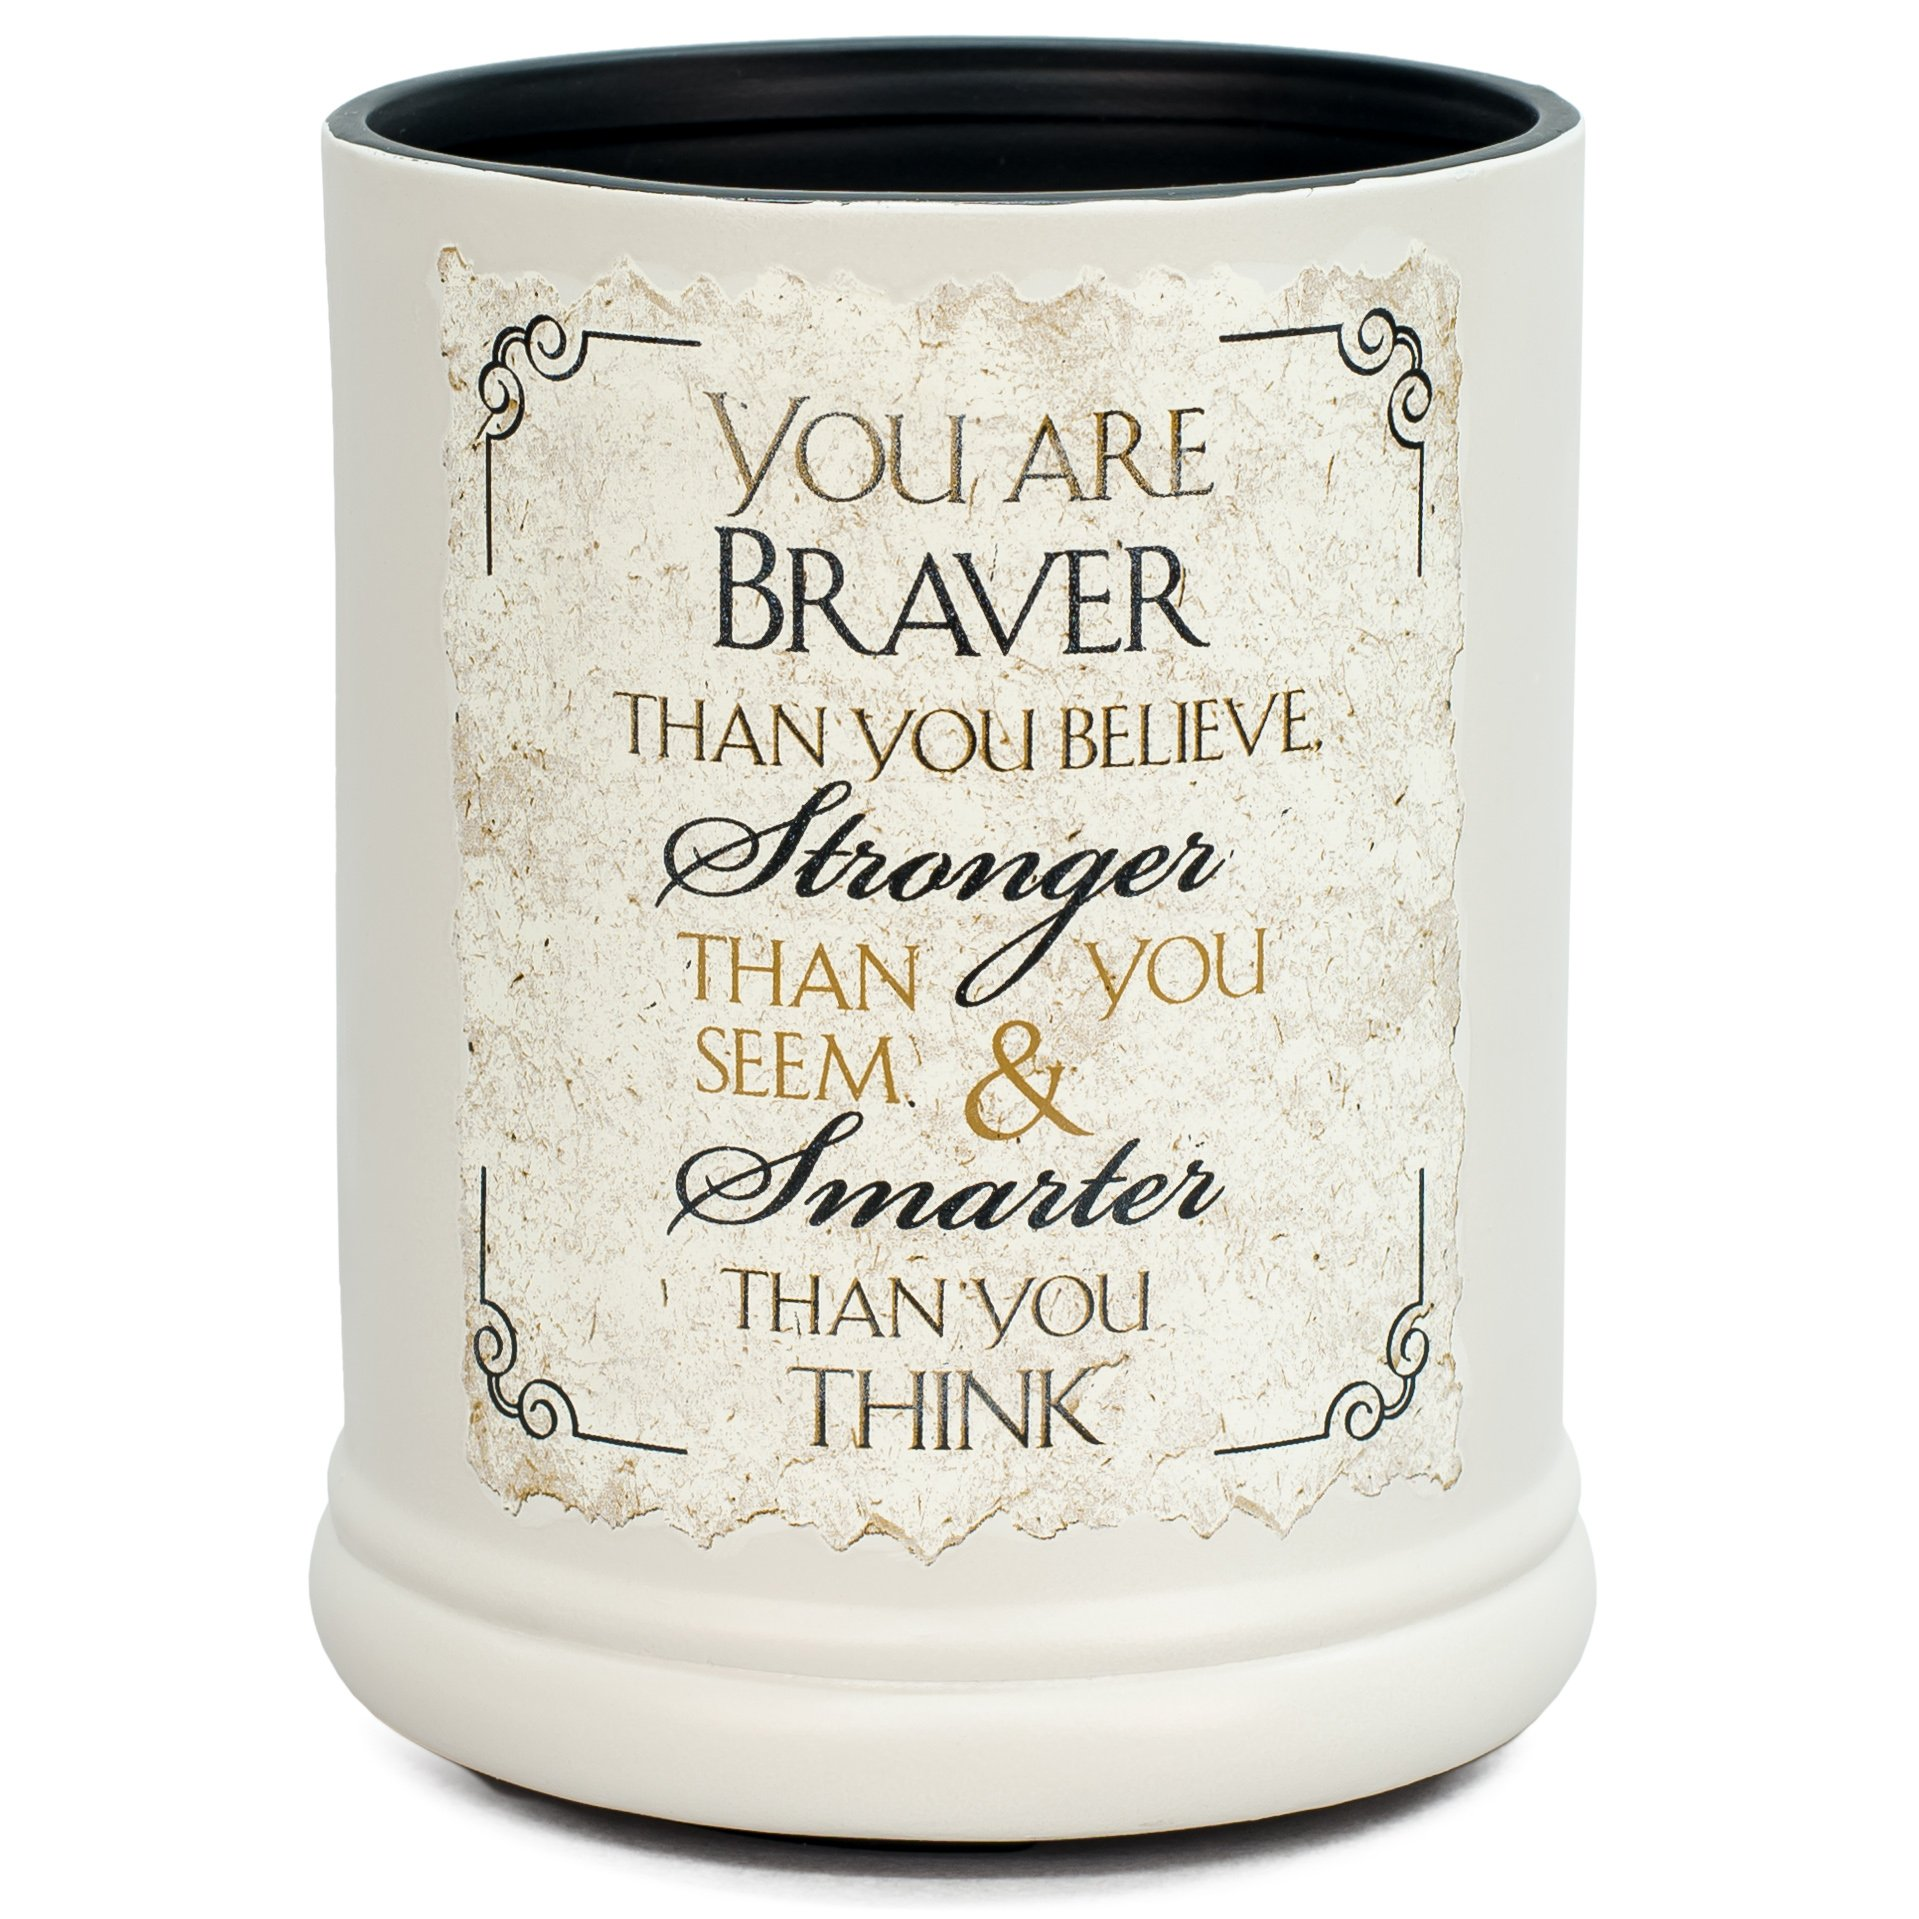 Elanze Designs You are Braver Stronger Smarter Ceramic Stoneware Electric Jar Candle Warmer